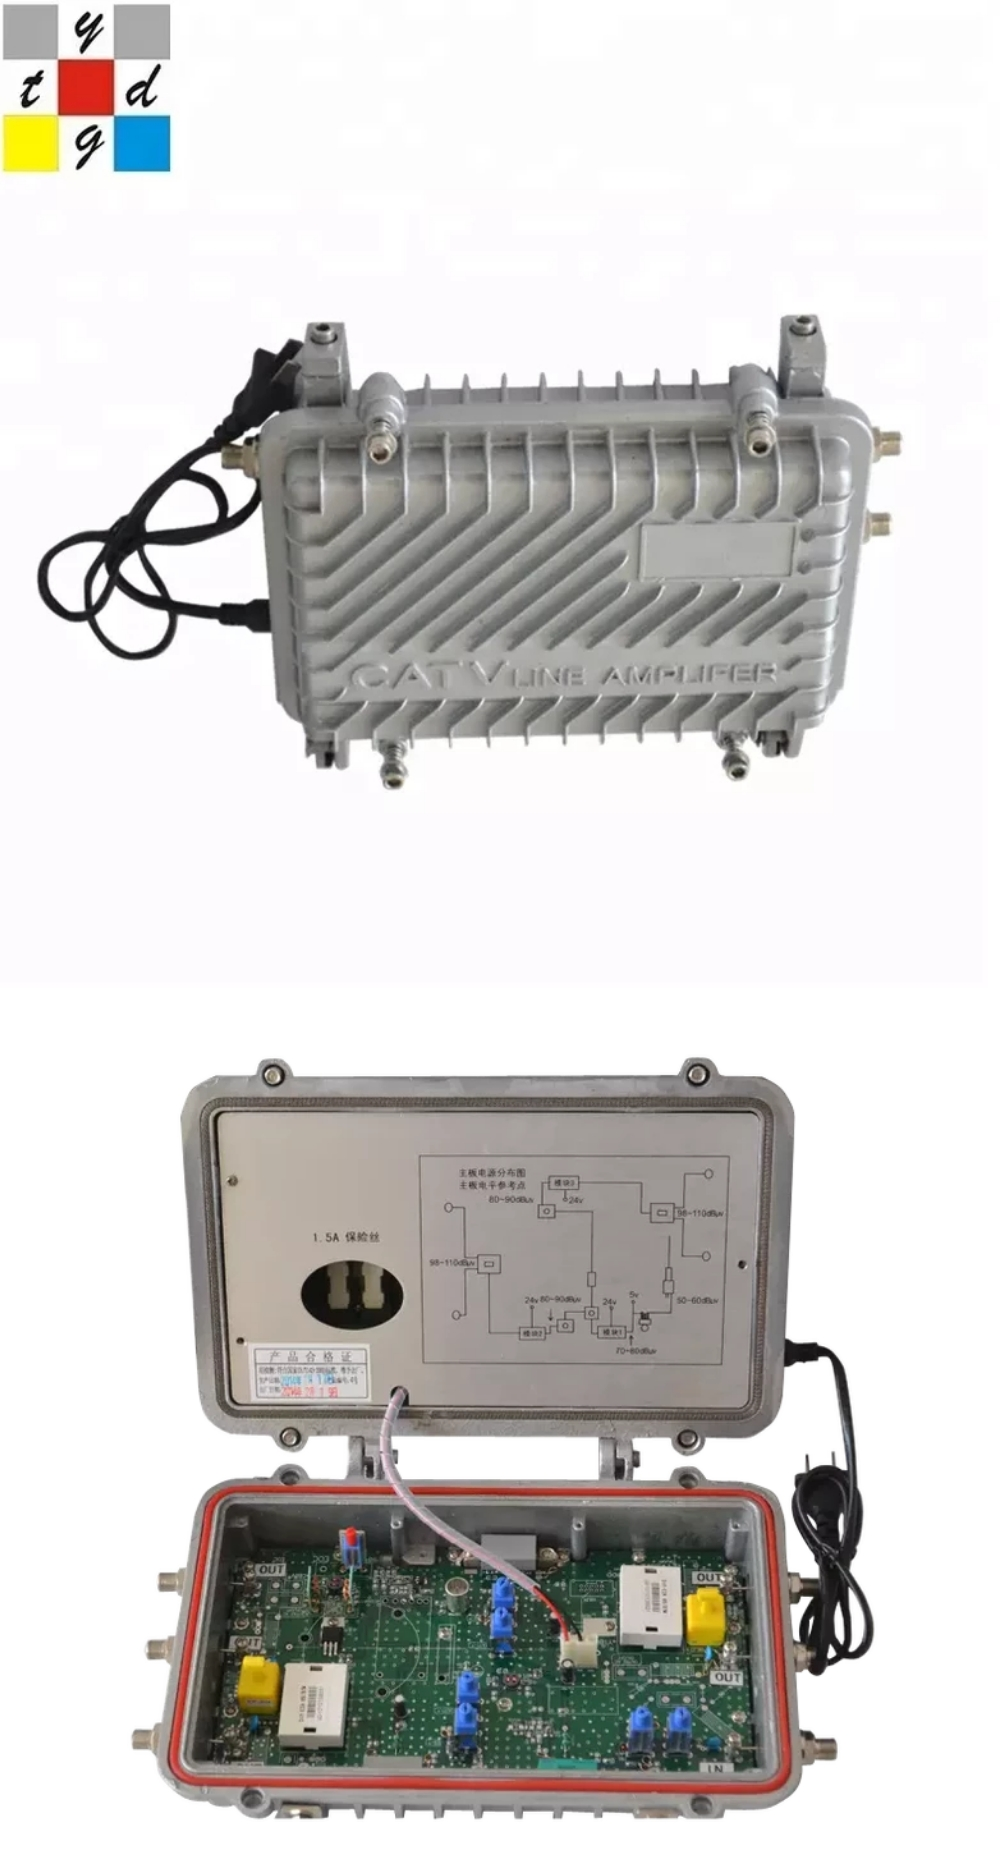 catv four way trunk distribution amplifier with reverse